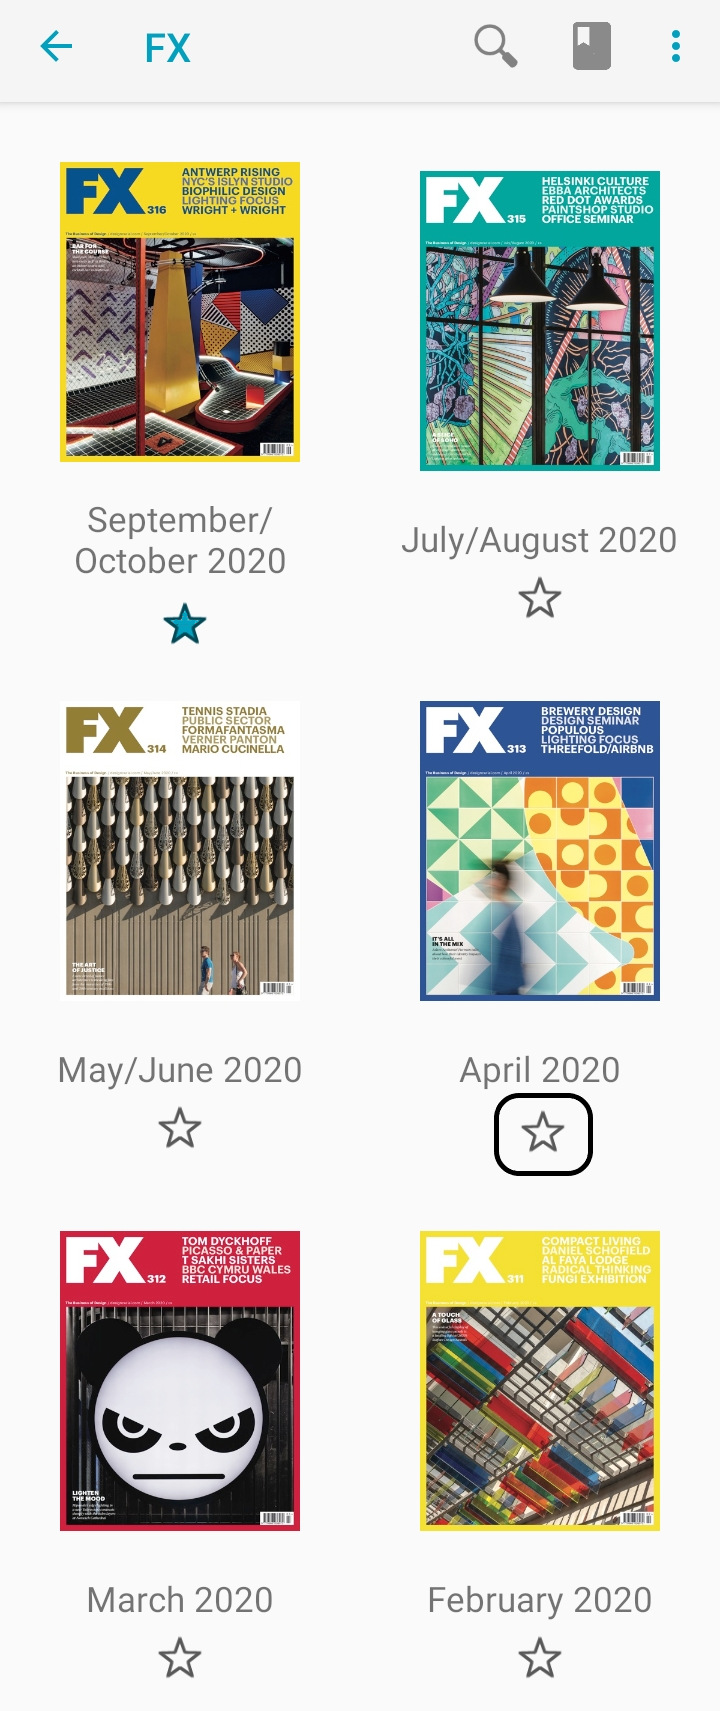 Latest and archive issues of FX on Exactly